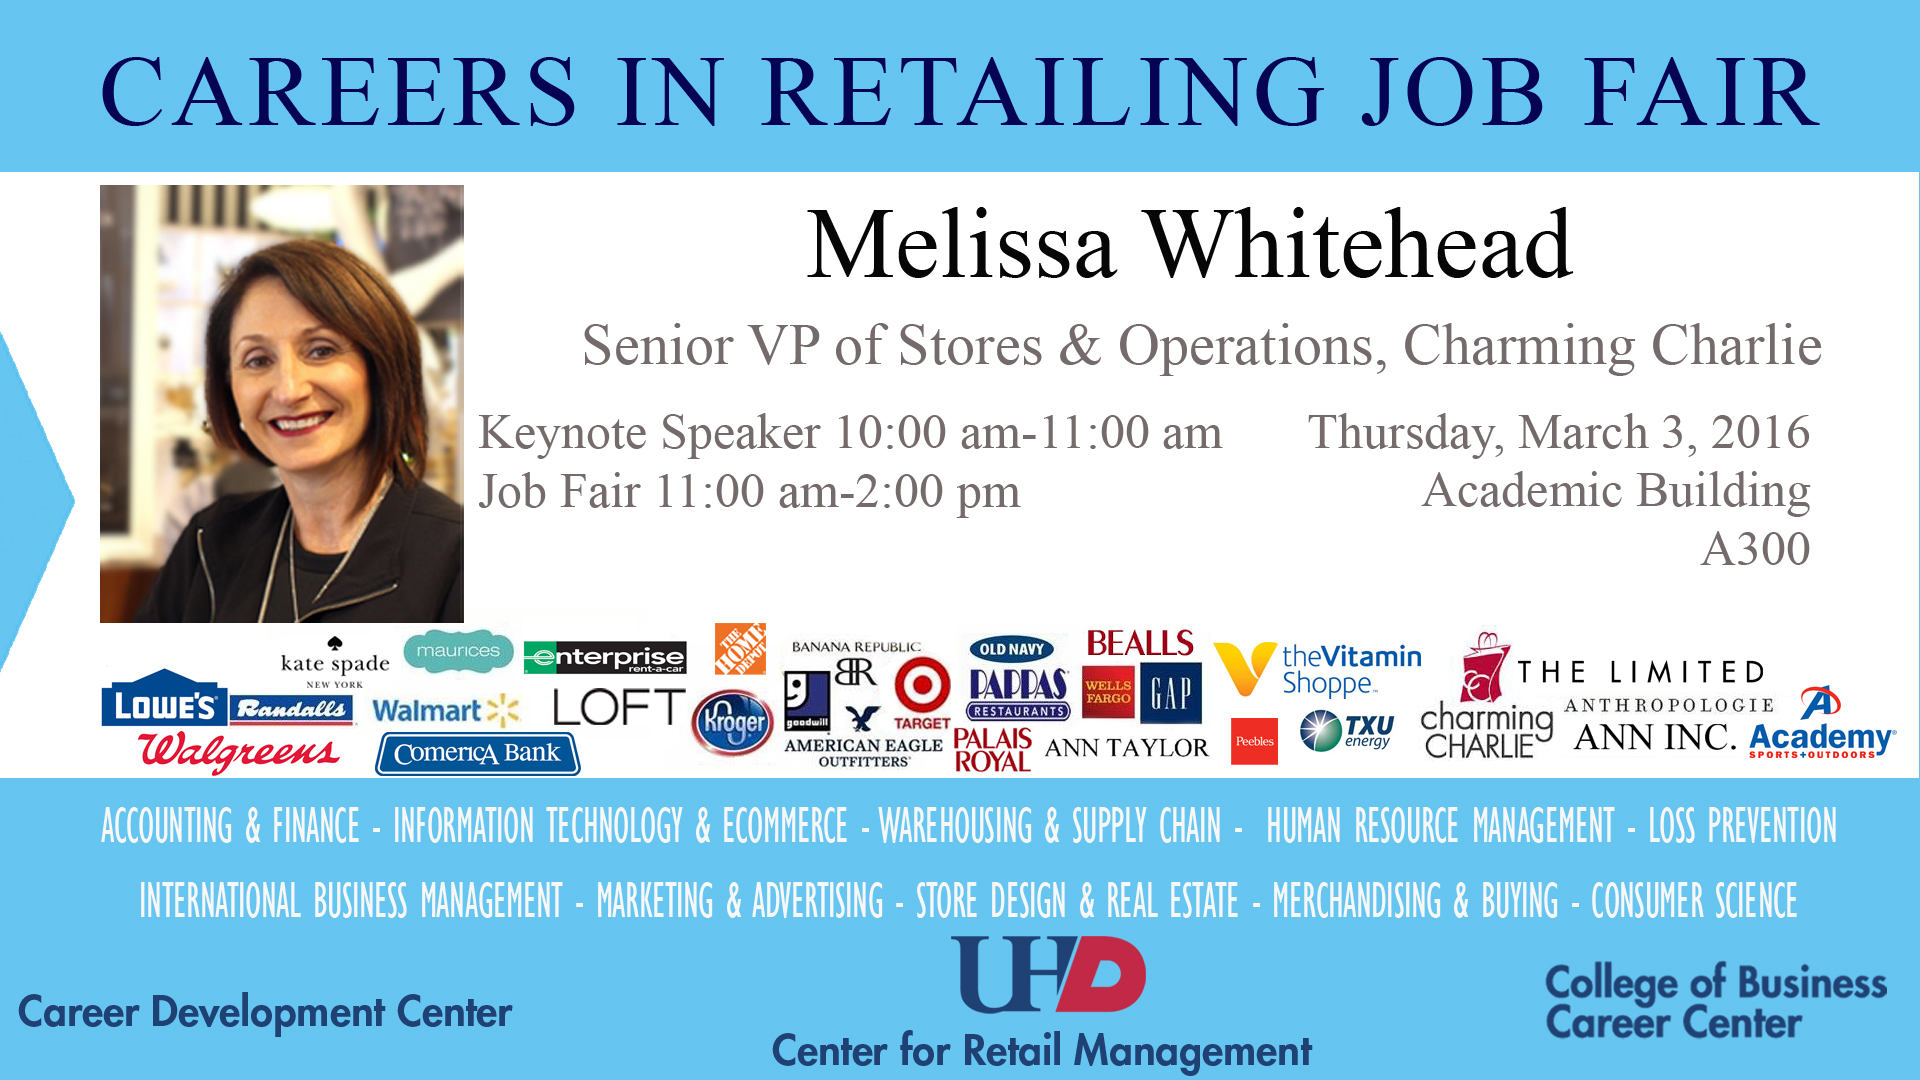 careers_in_retailing_fair2